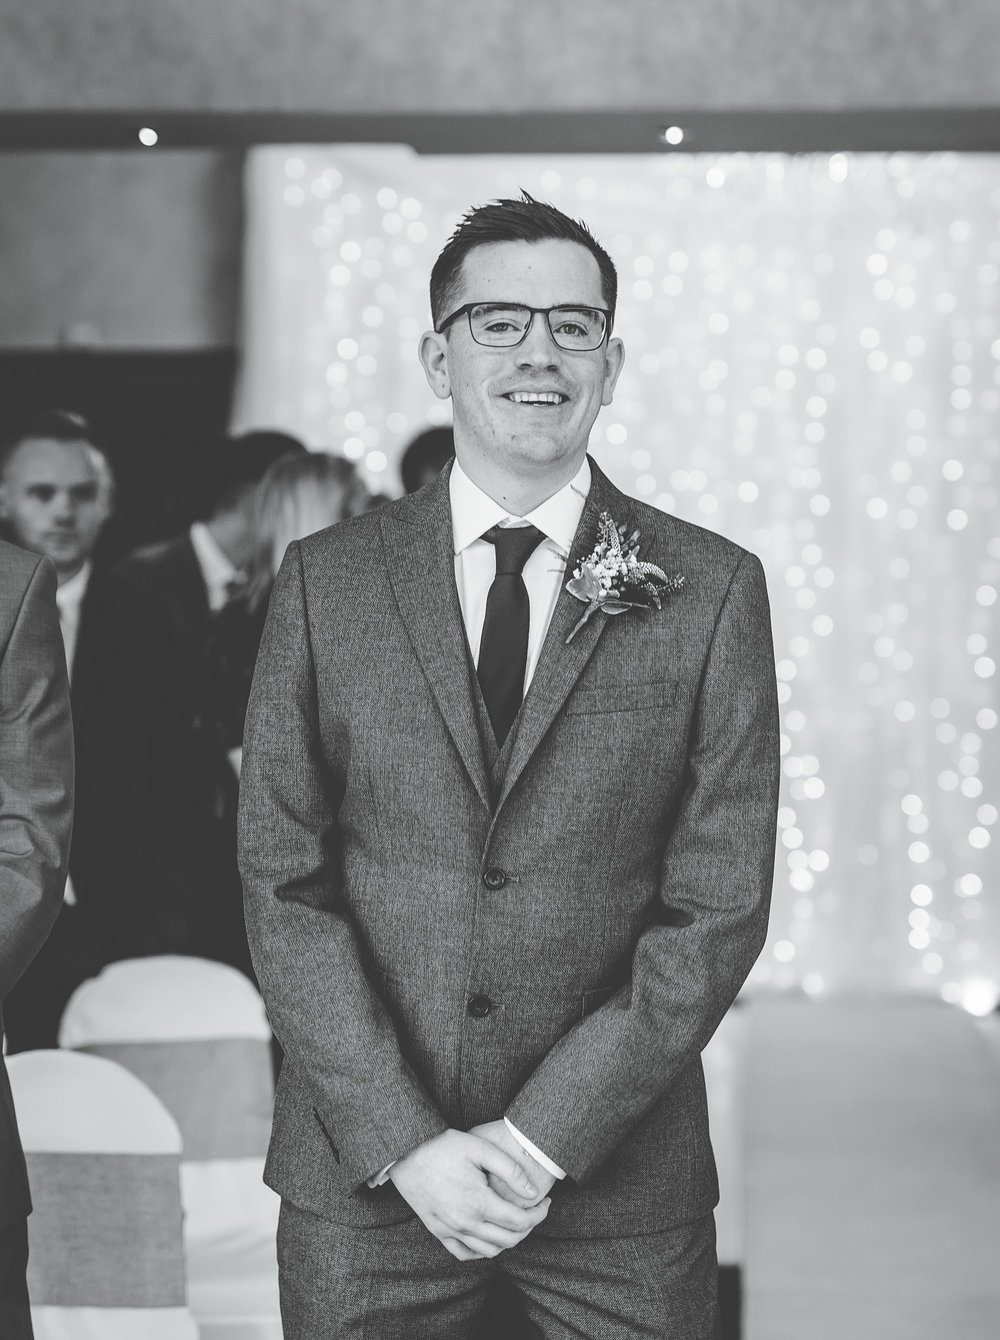 The groom stood at the alter. Lancashire wedding photographer.